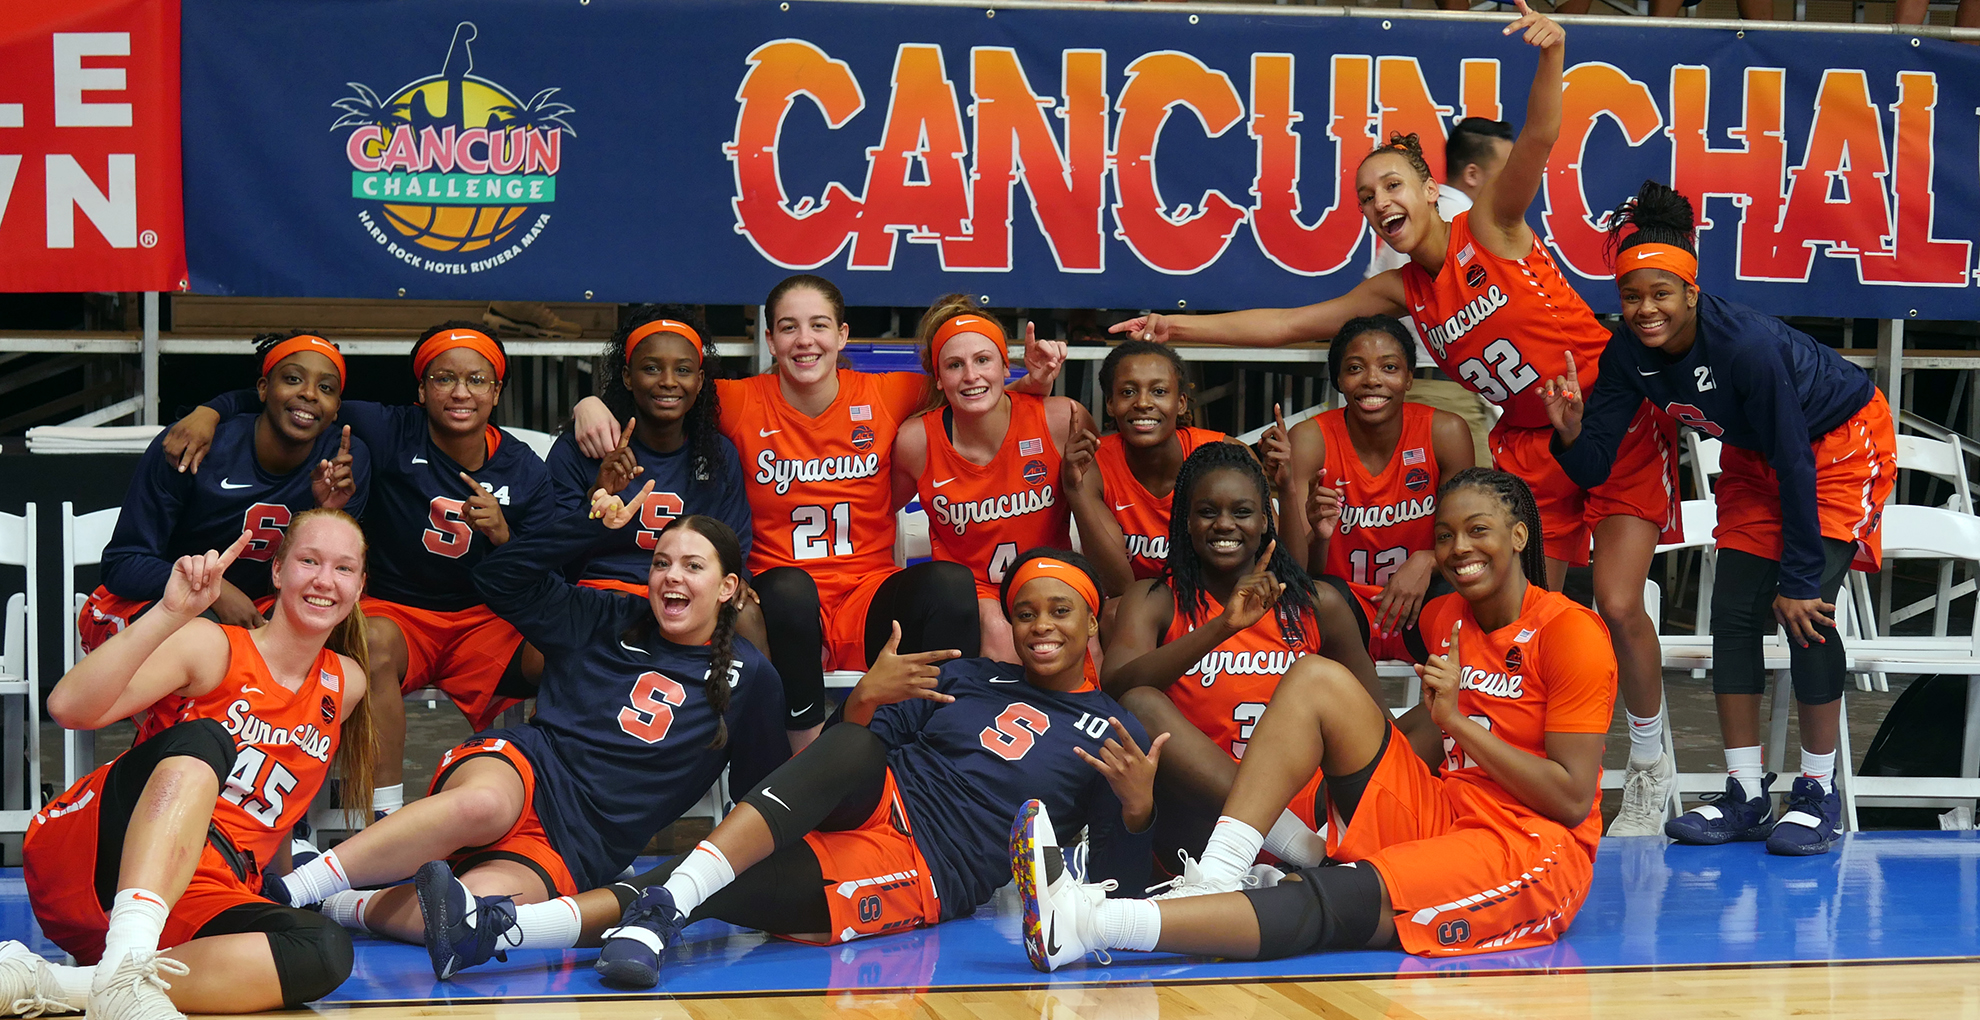 Mangakahia S Buzzer Beater Lifts 14 Syracuse Over 16 Depaul In